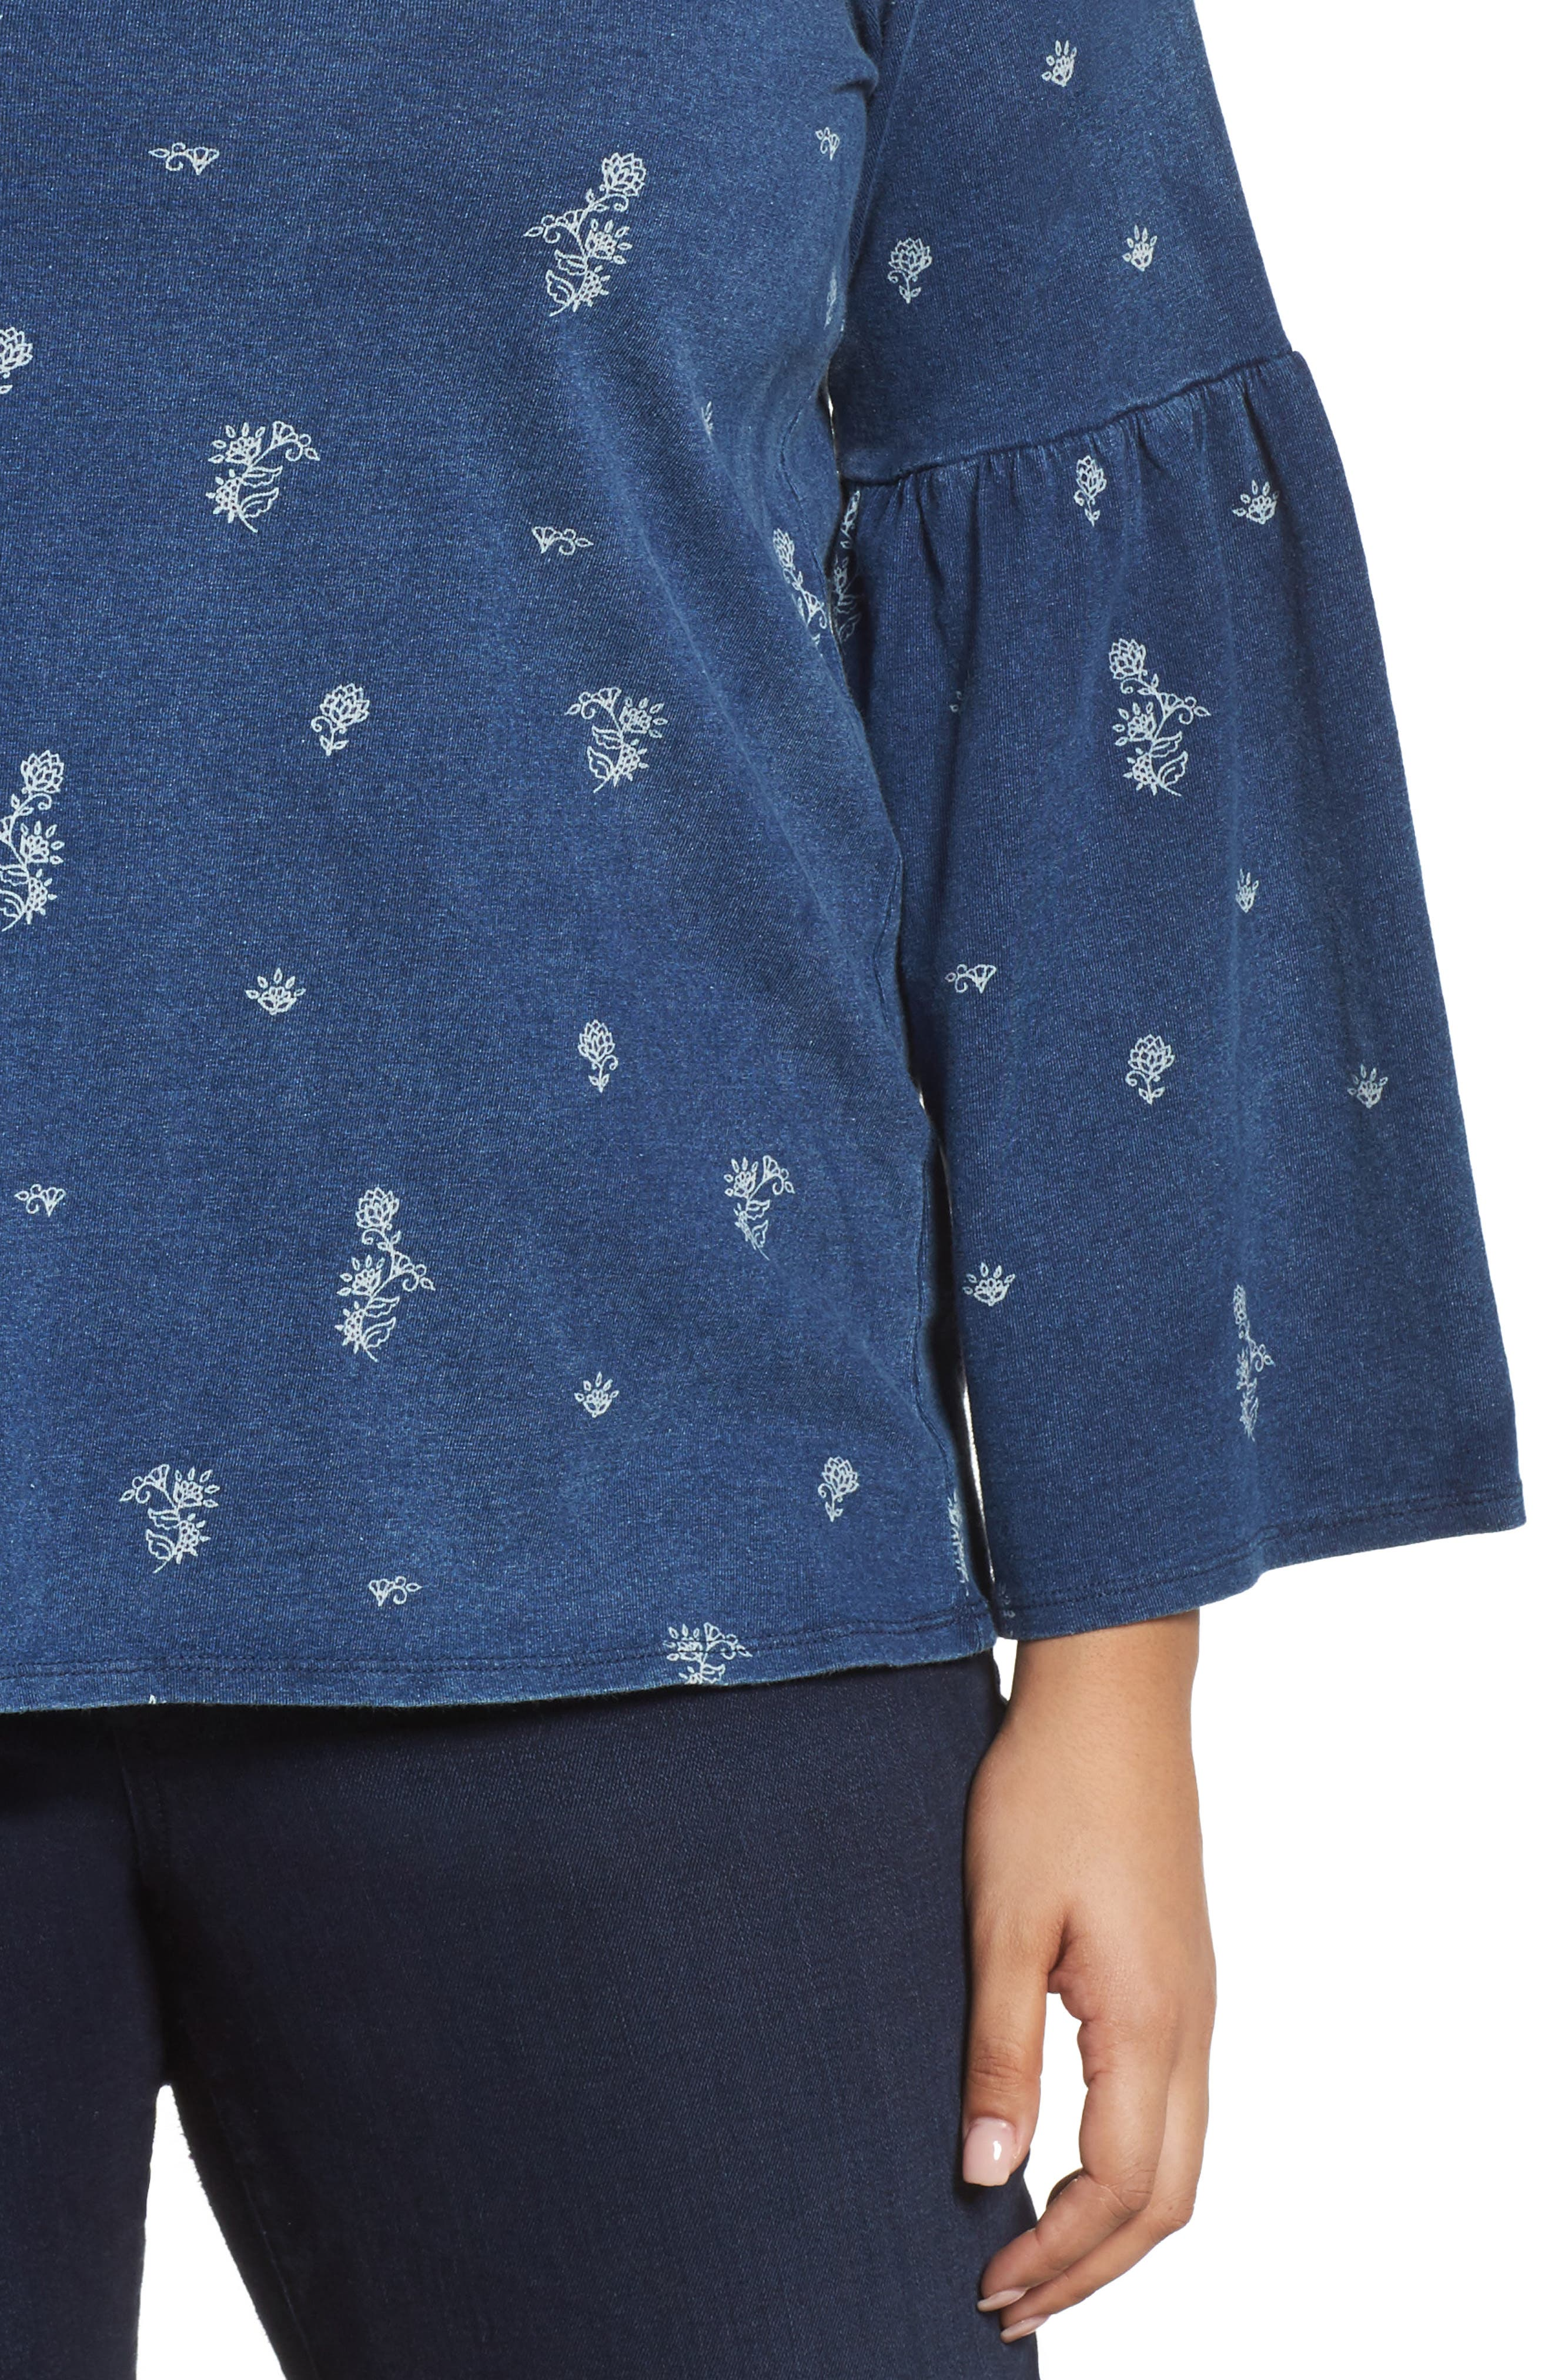 TWO BY VINCE CAMUTO, Ditzy Floral Print Bell Sleeve Top, Alternate thumbnail 4, color, TRUE INDIGO